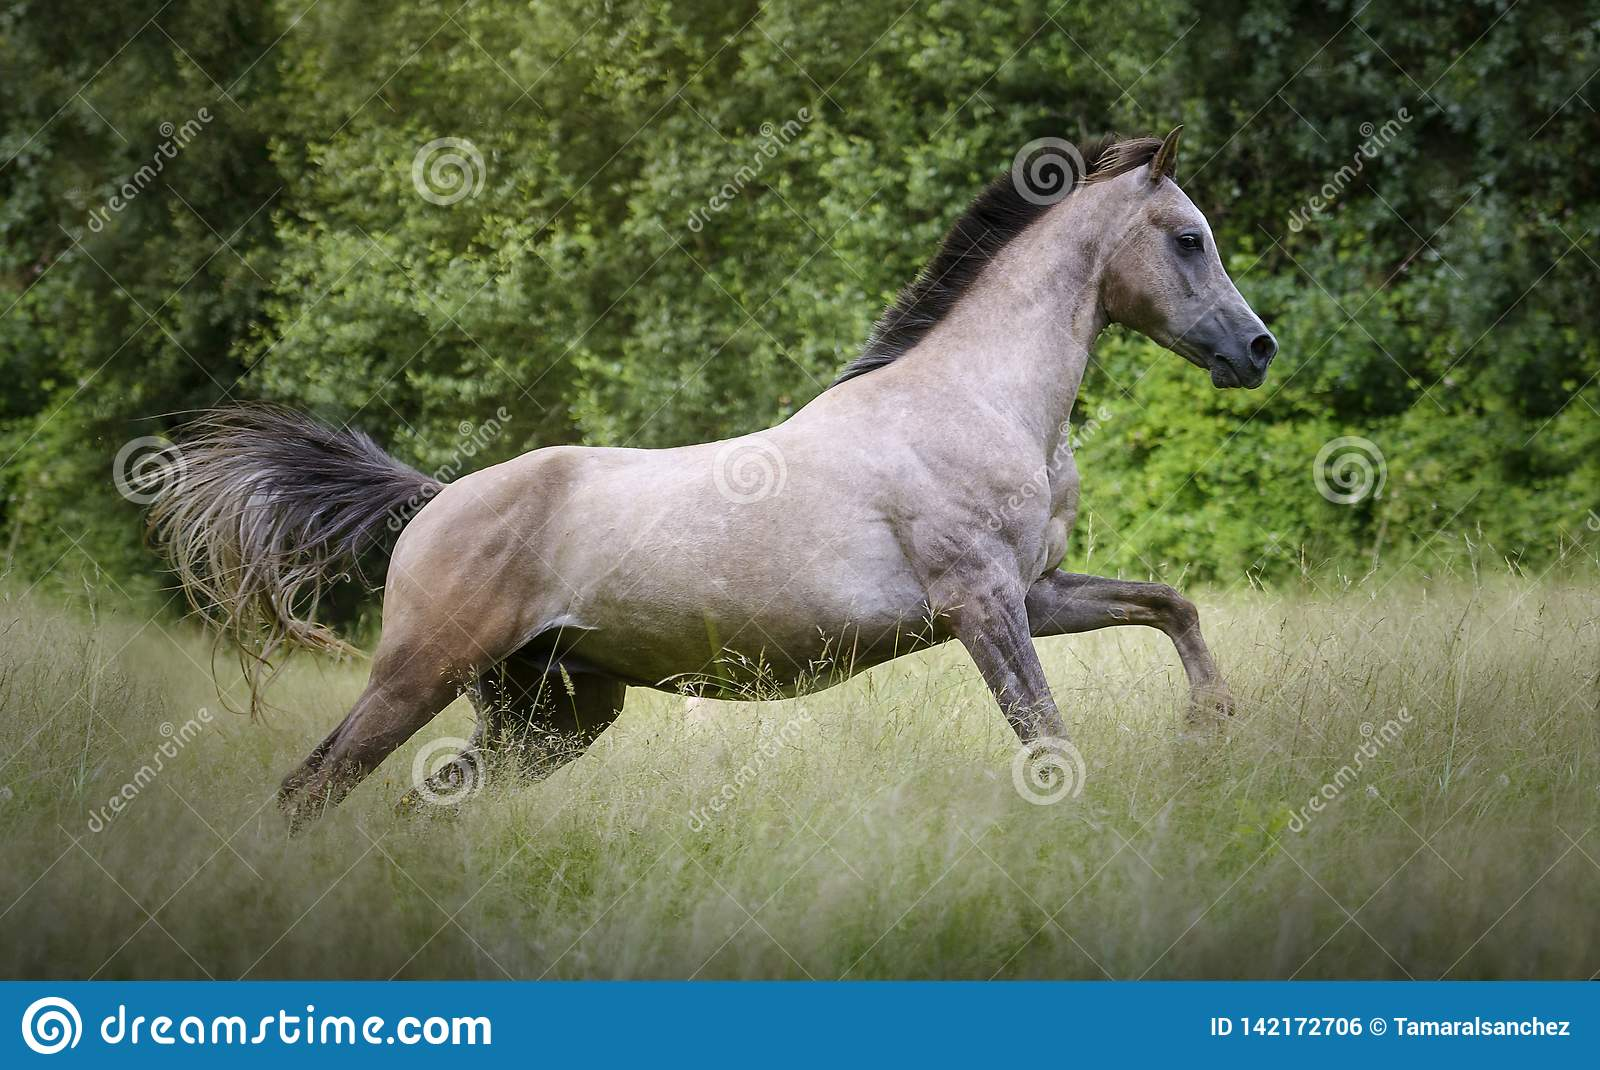 Young Purebred Arabian Horse Galloping Through The Grass In A Meadow With A Forest In The Background Stock Photo Image Of Joyful Gelding 142172706